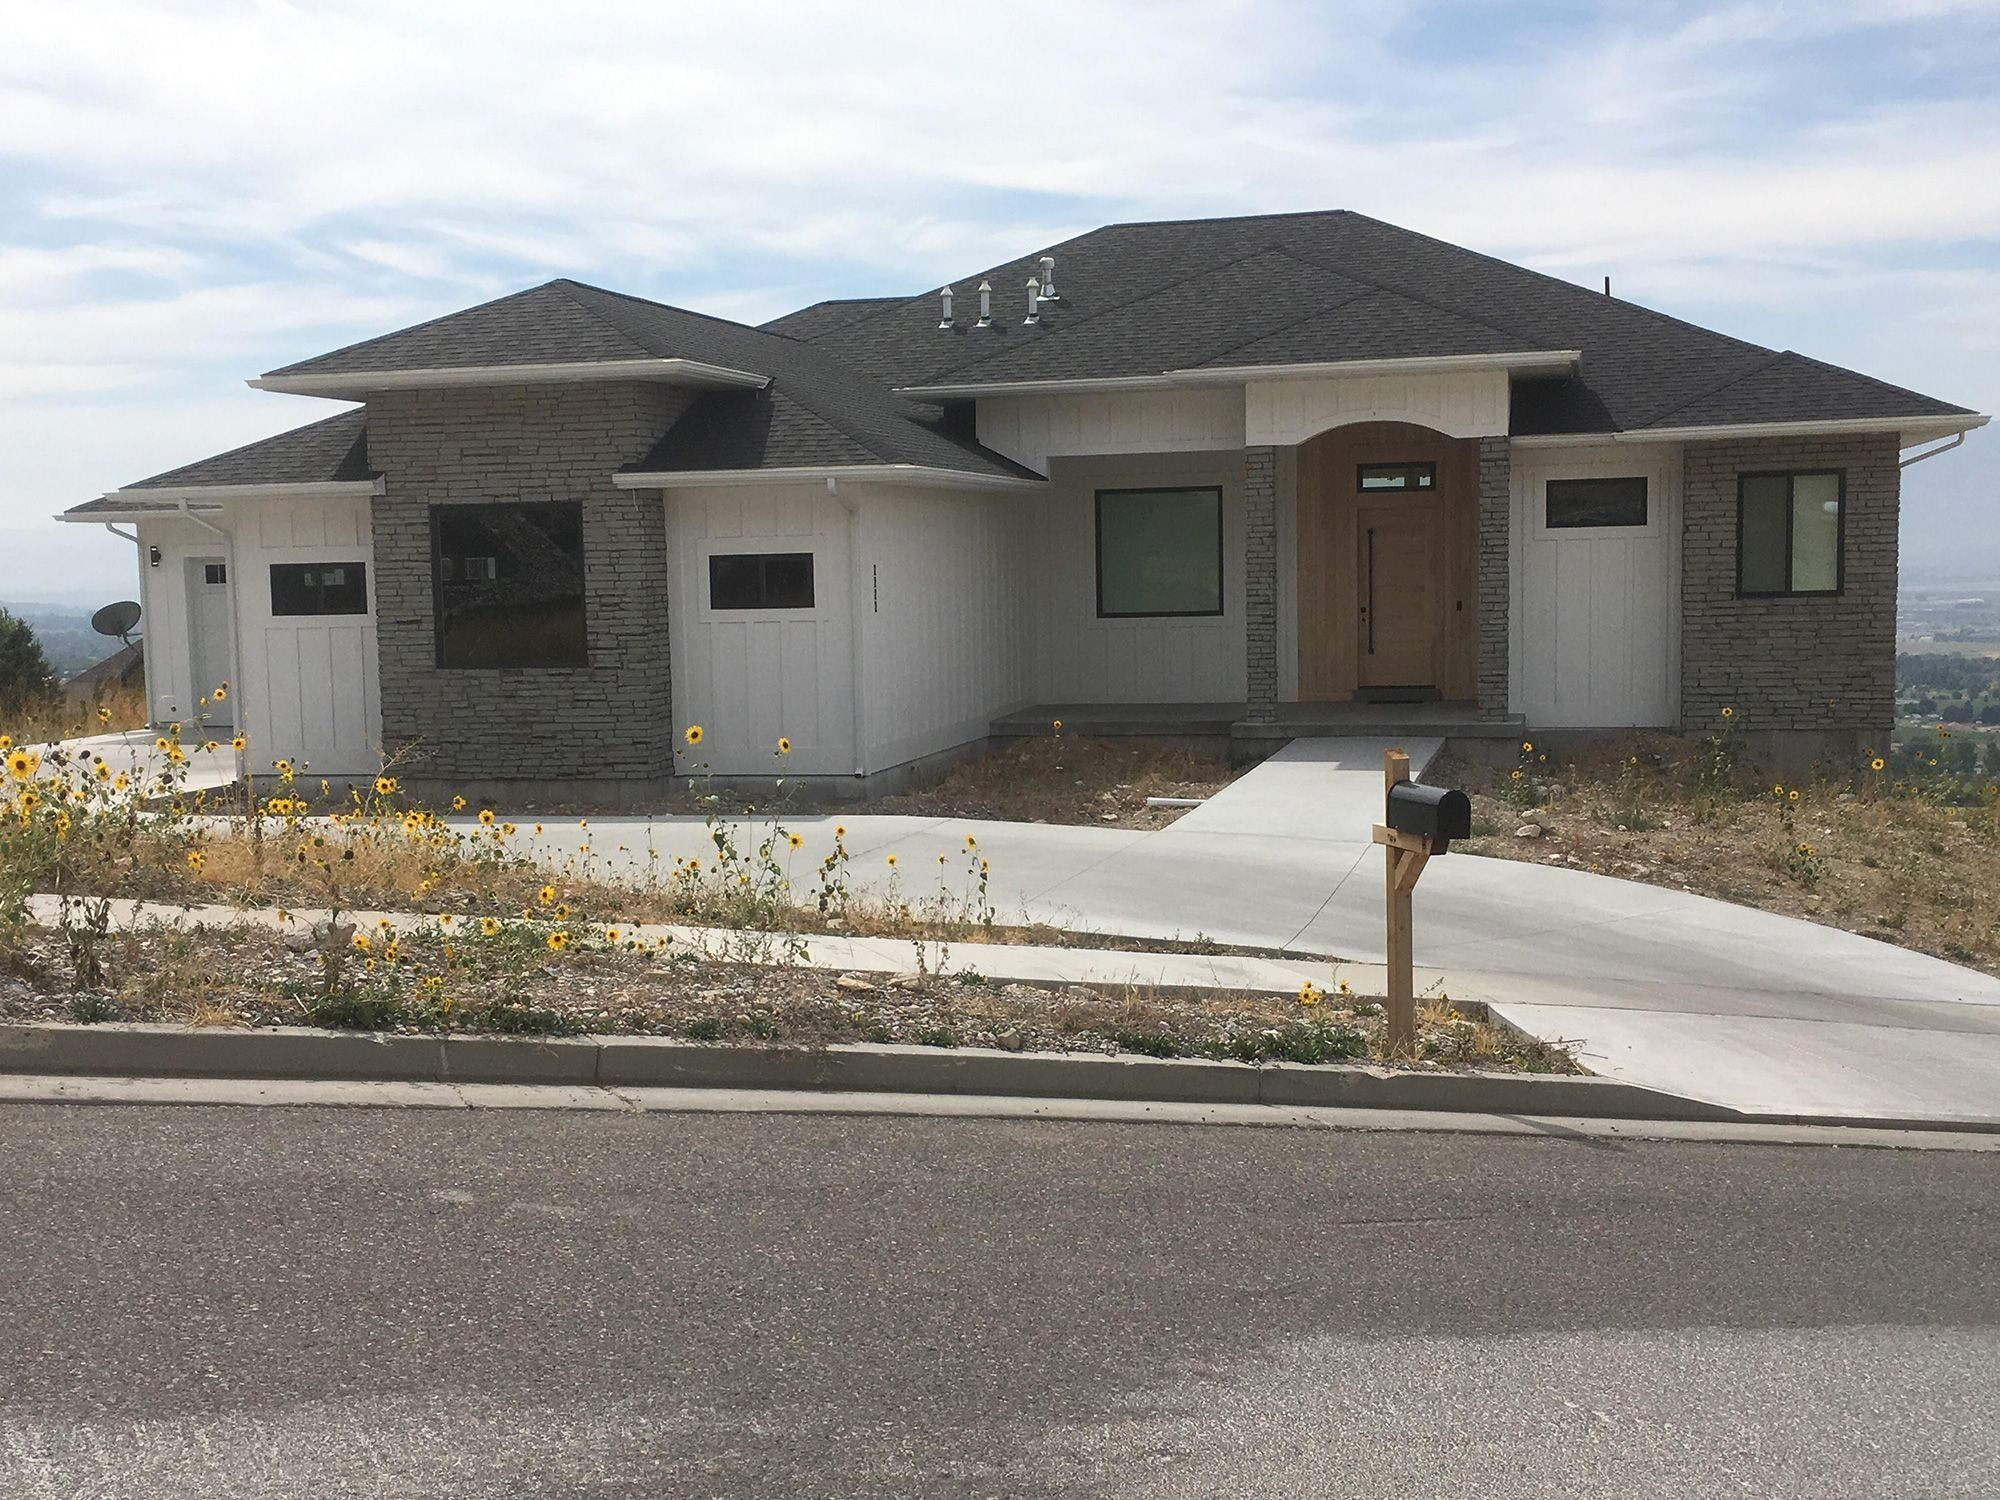 Check out this beautiful modern home built in logan ut we